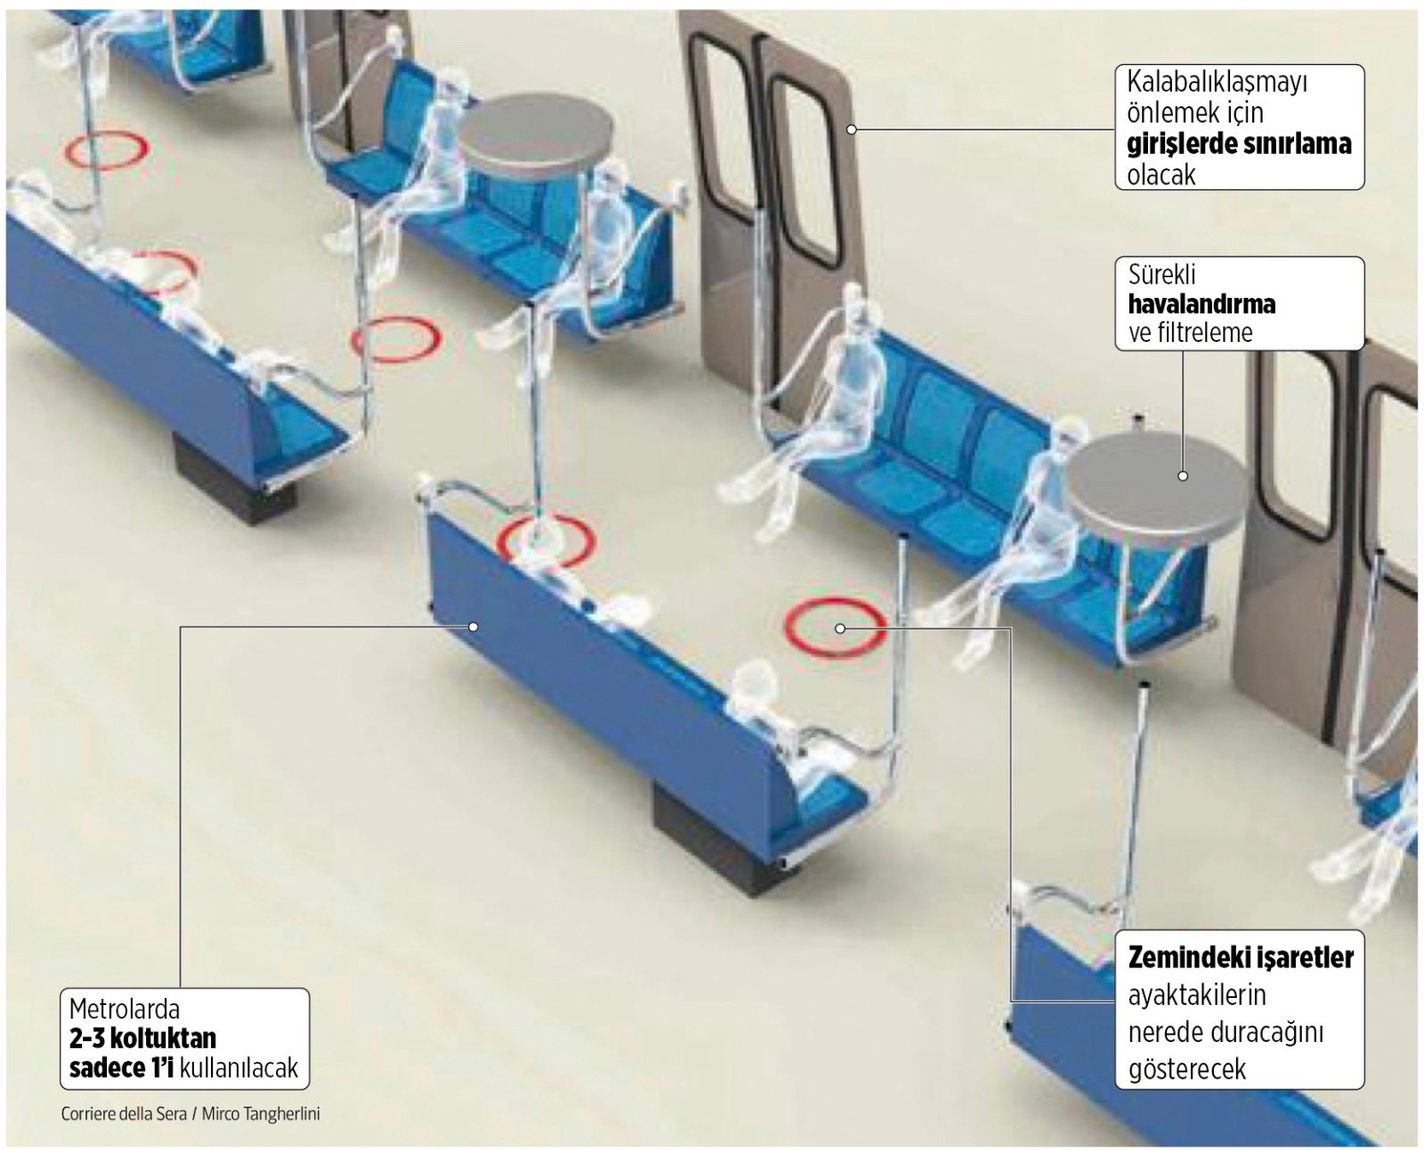 Seating Arrangements in Subways After Coronary Virus in Italy